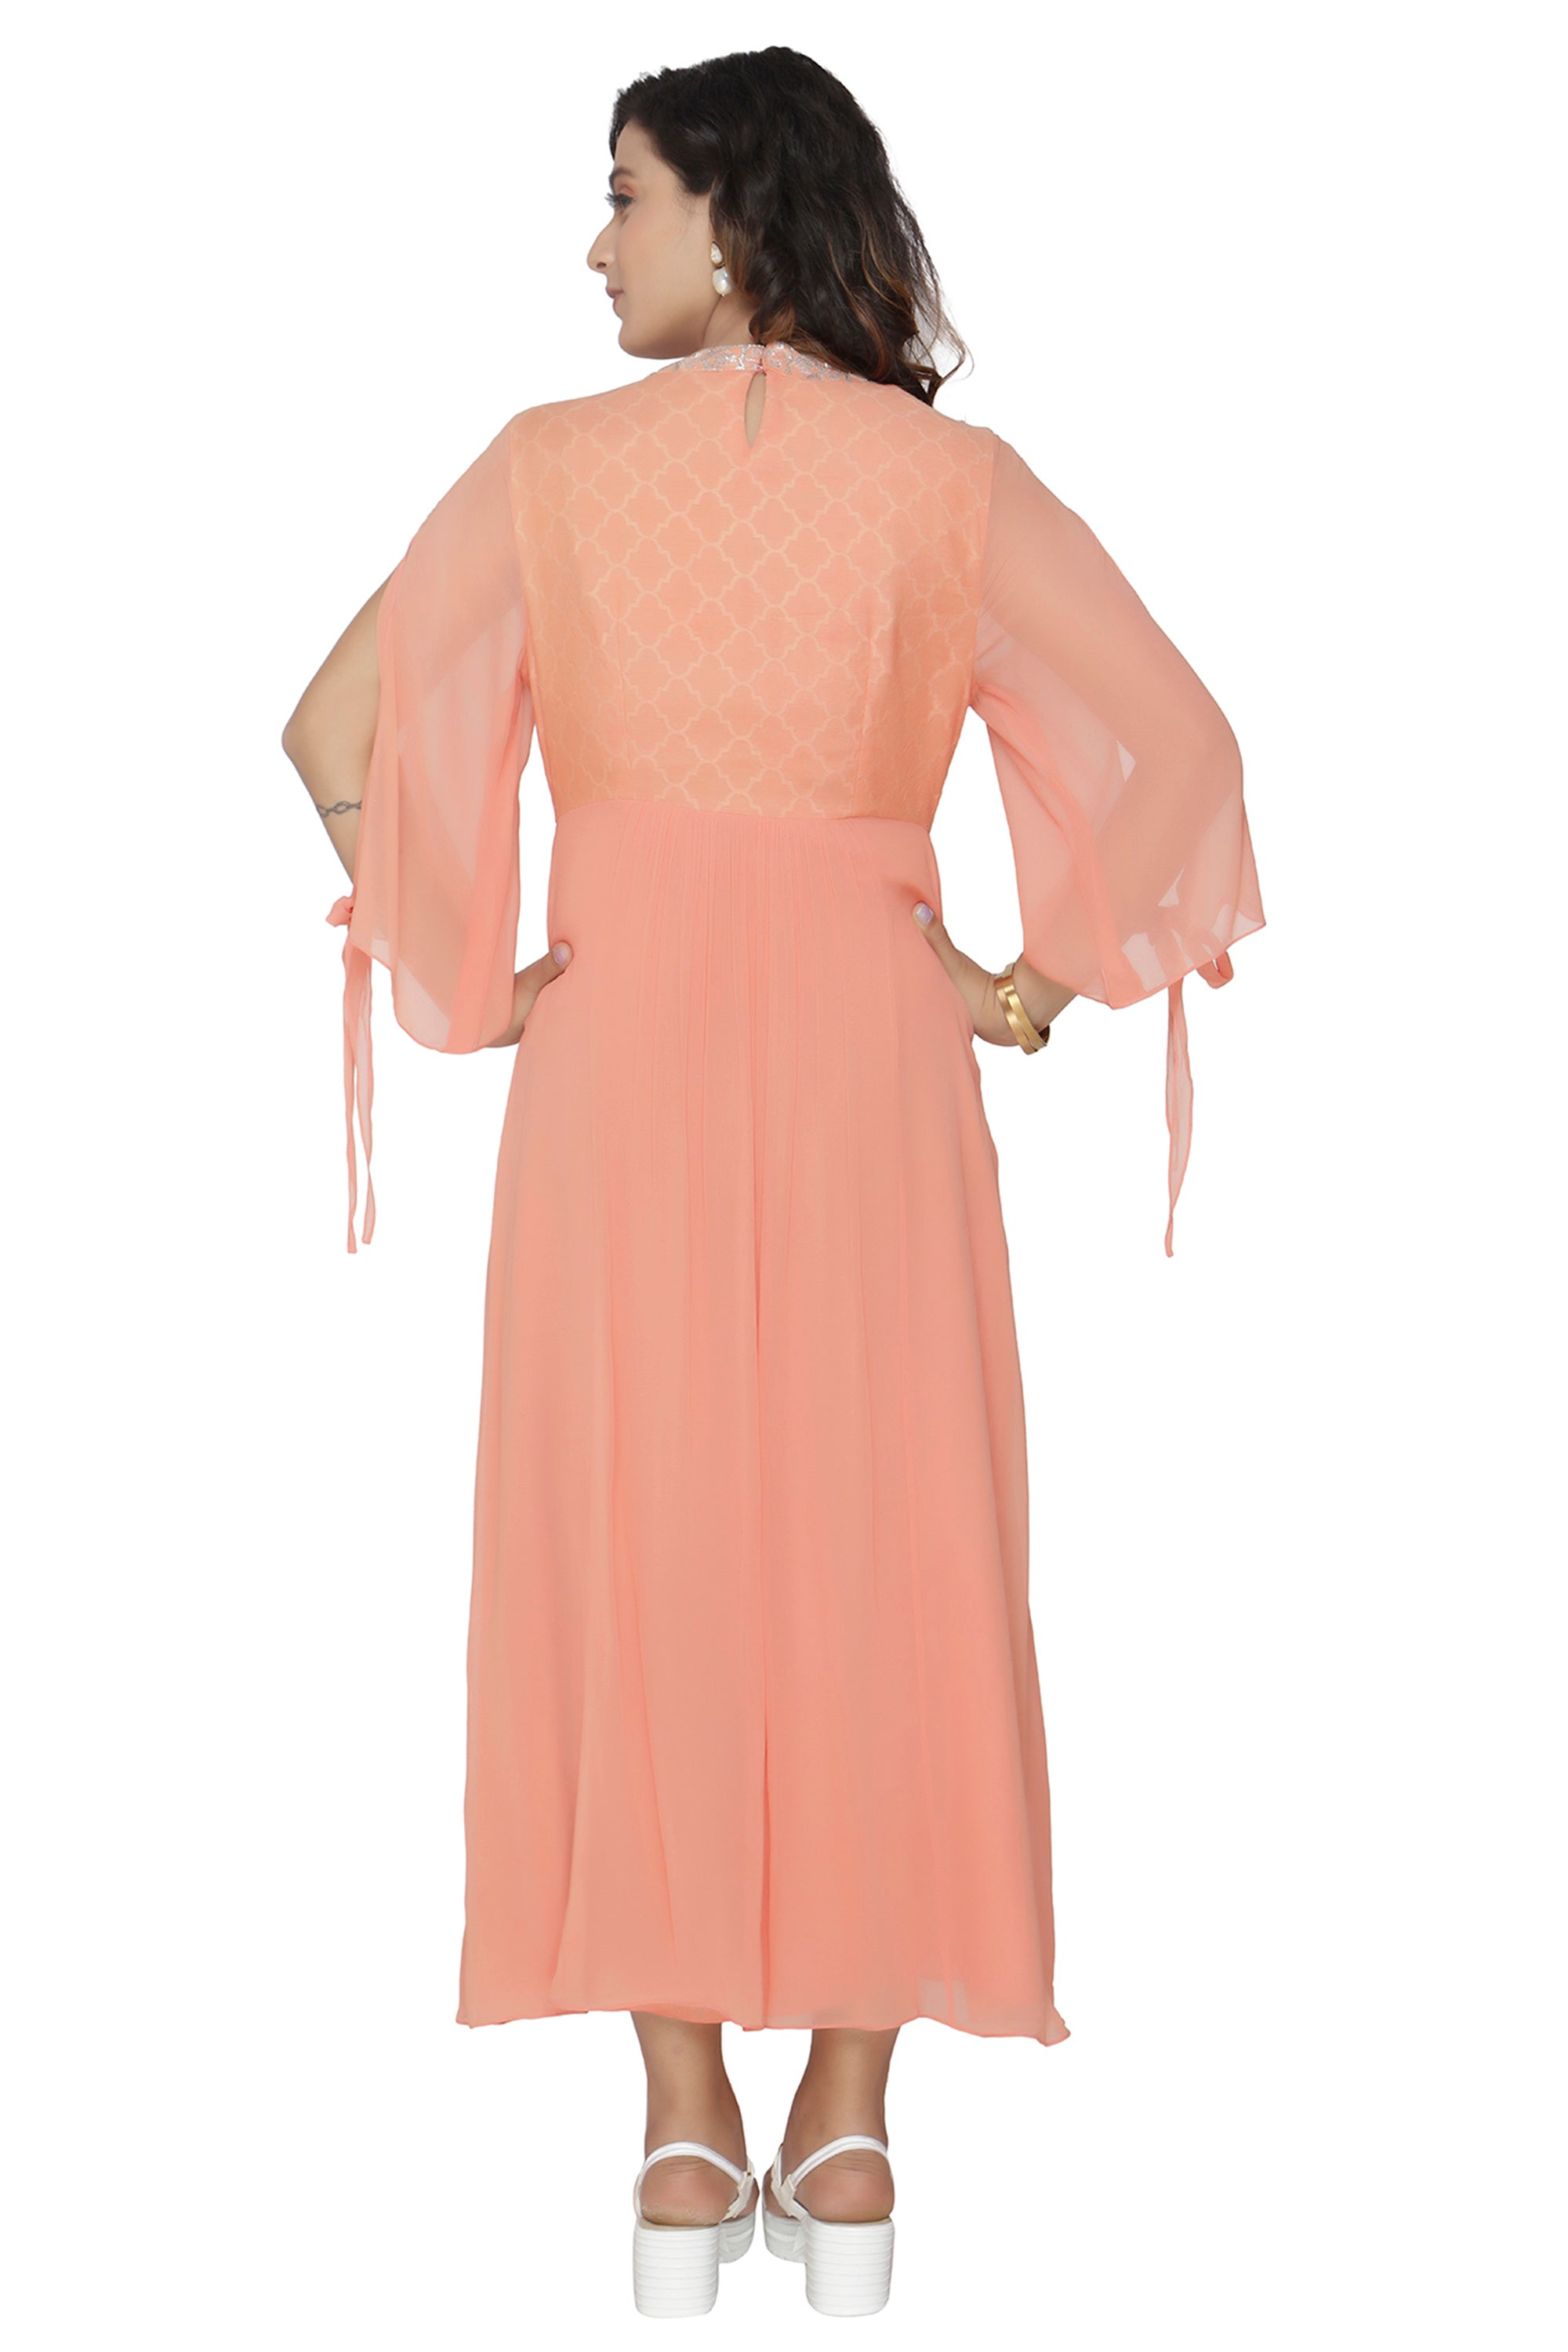 Peach Tunic With Bell Sleeves BACK